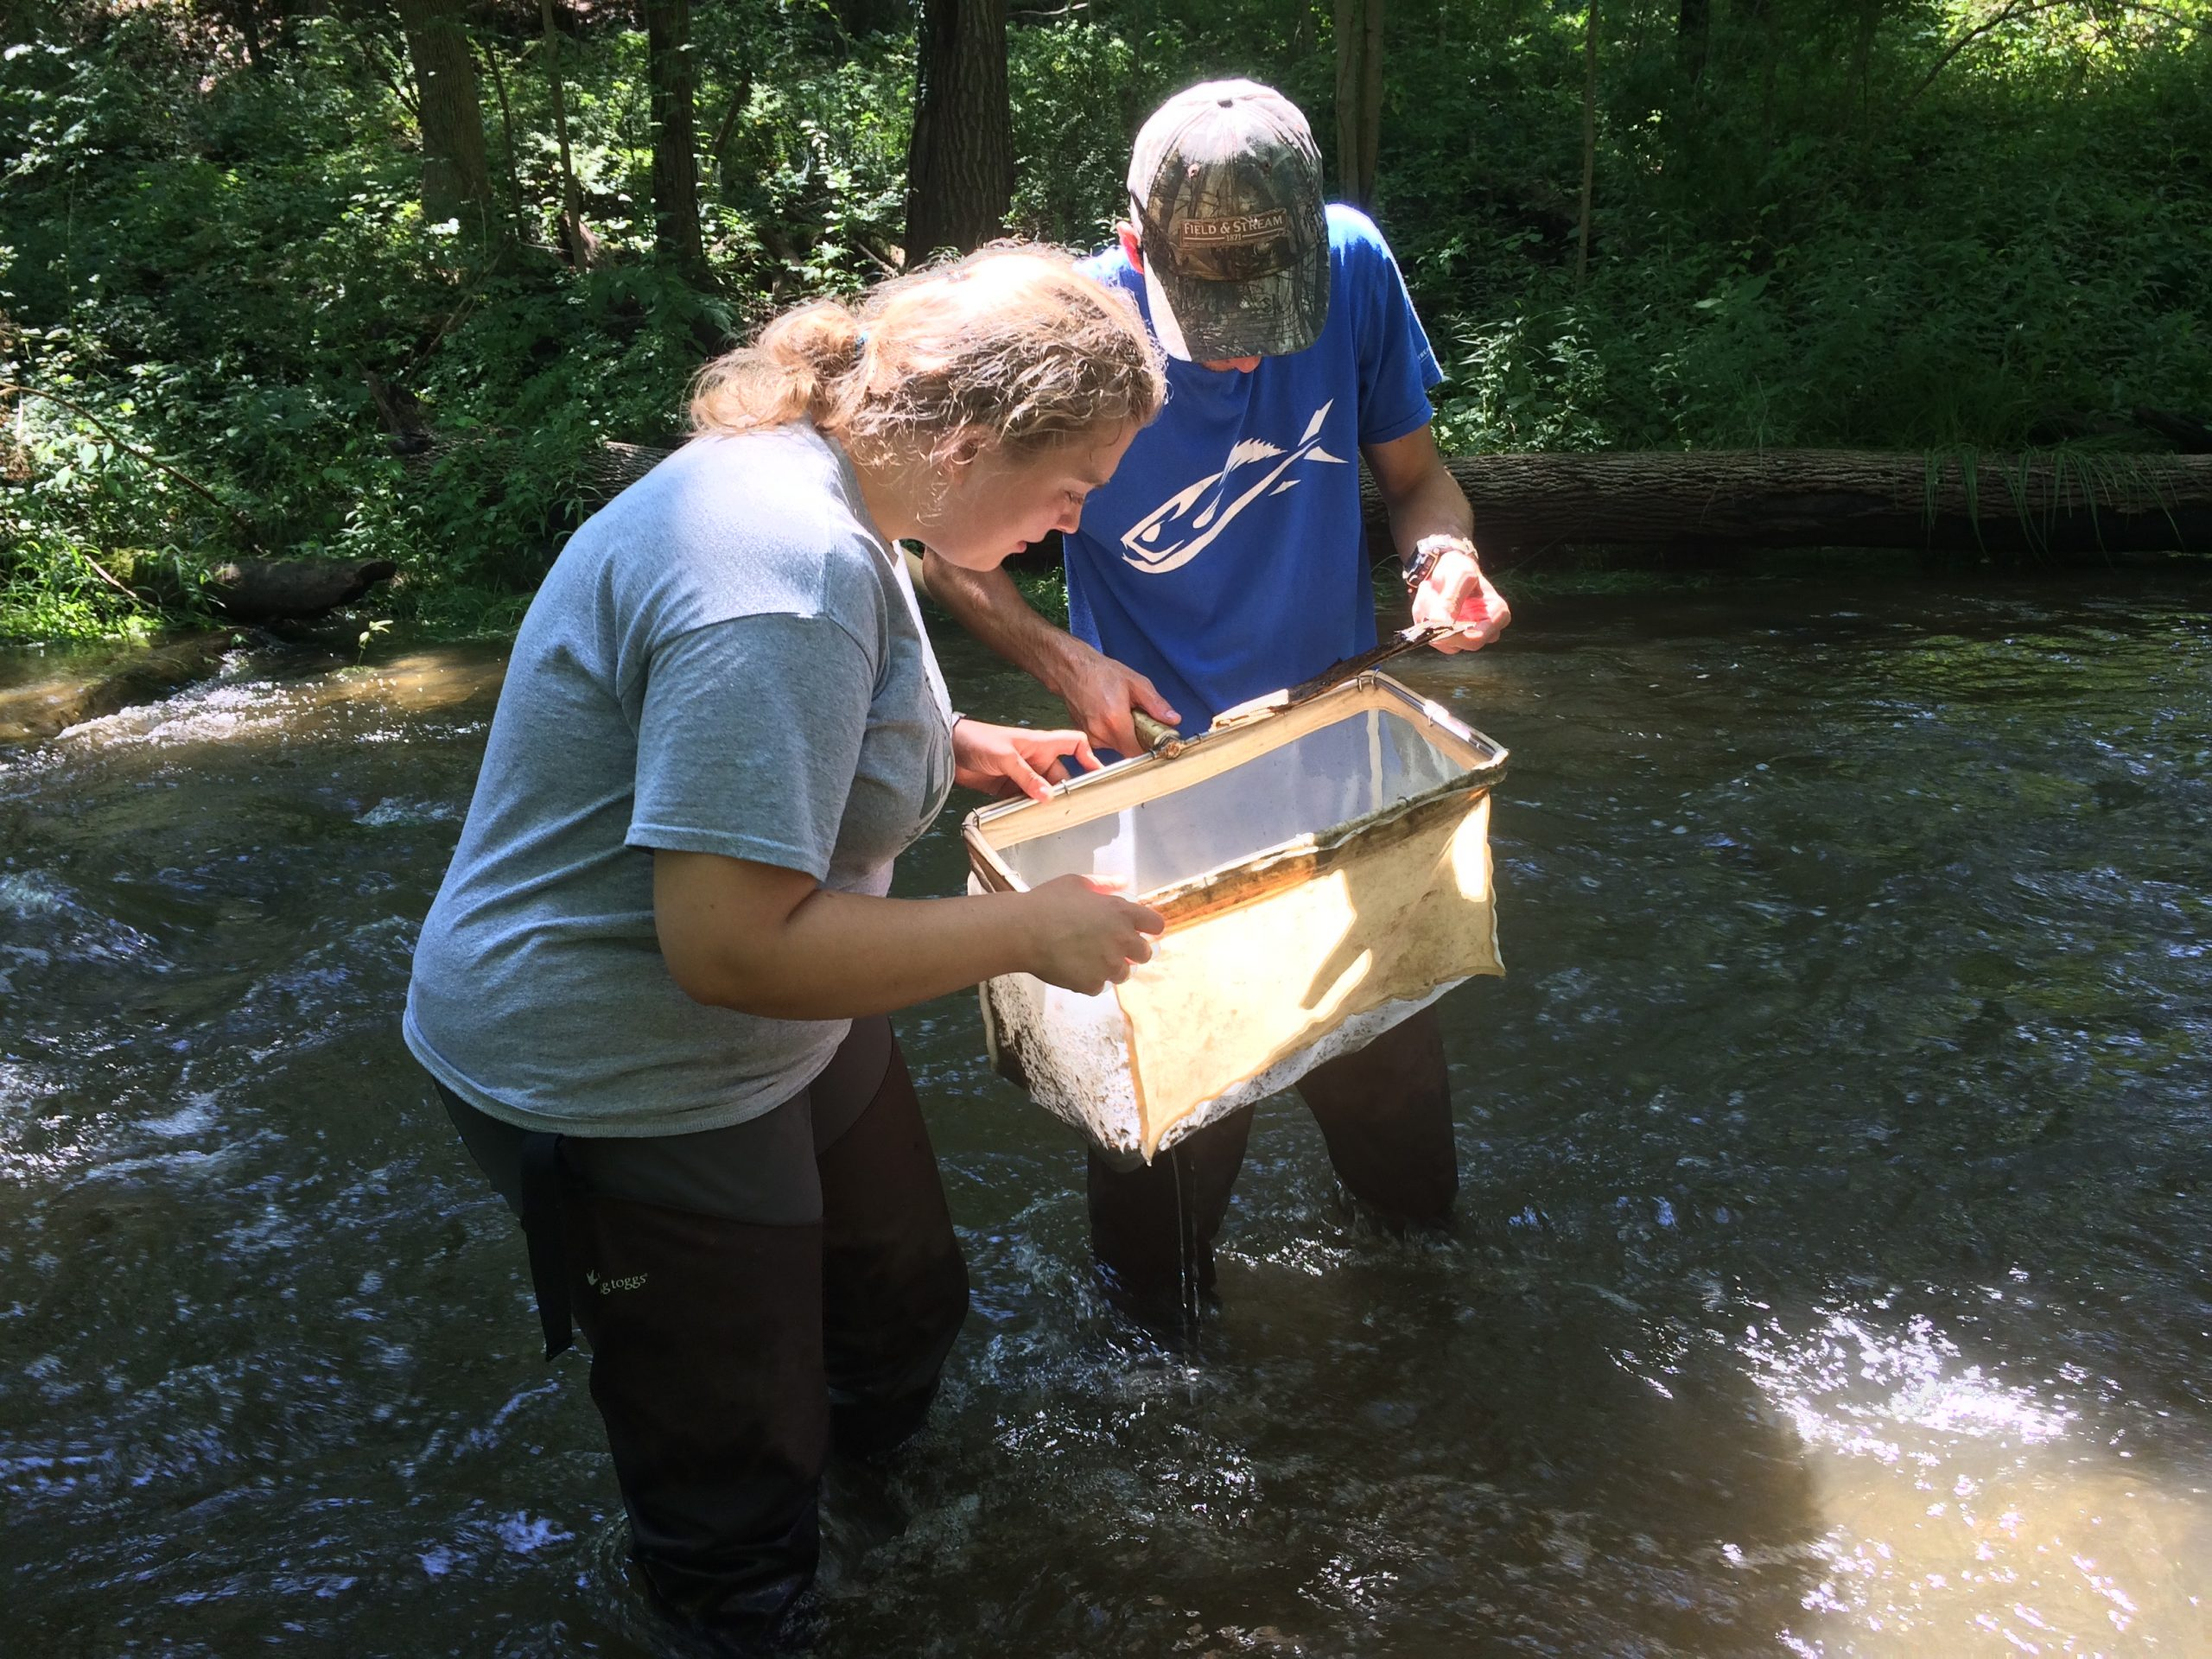 River Stewards Sampling Macroinvertebrates